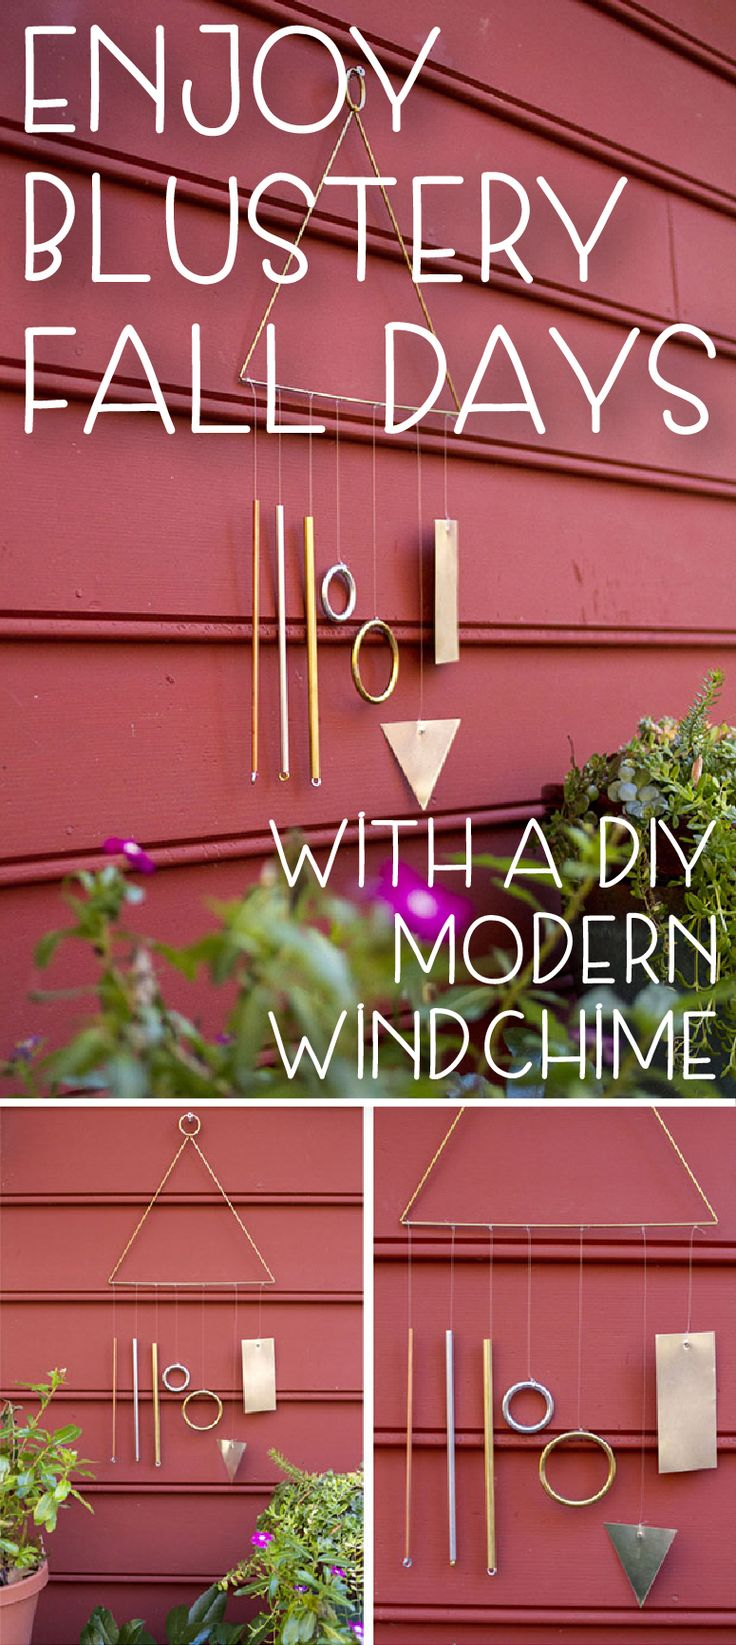 DIY wind chime! Enjoy the beautiful sounds of a breezy afternoon with a simple, modern wind chime. Instructions on how to make your own here:  http://www.ehow.com/ehow-home/blog/enjoy-blustery-fall-afternoons-with-a-diy-modern-wind-chime/?utm_source=pinterest&utm_medium=fanpage&utm_content=blog